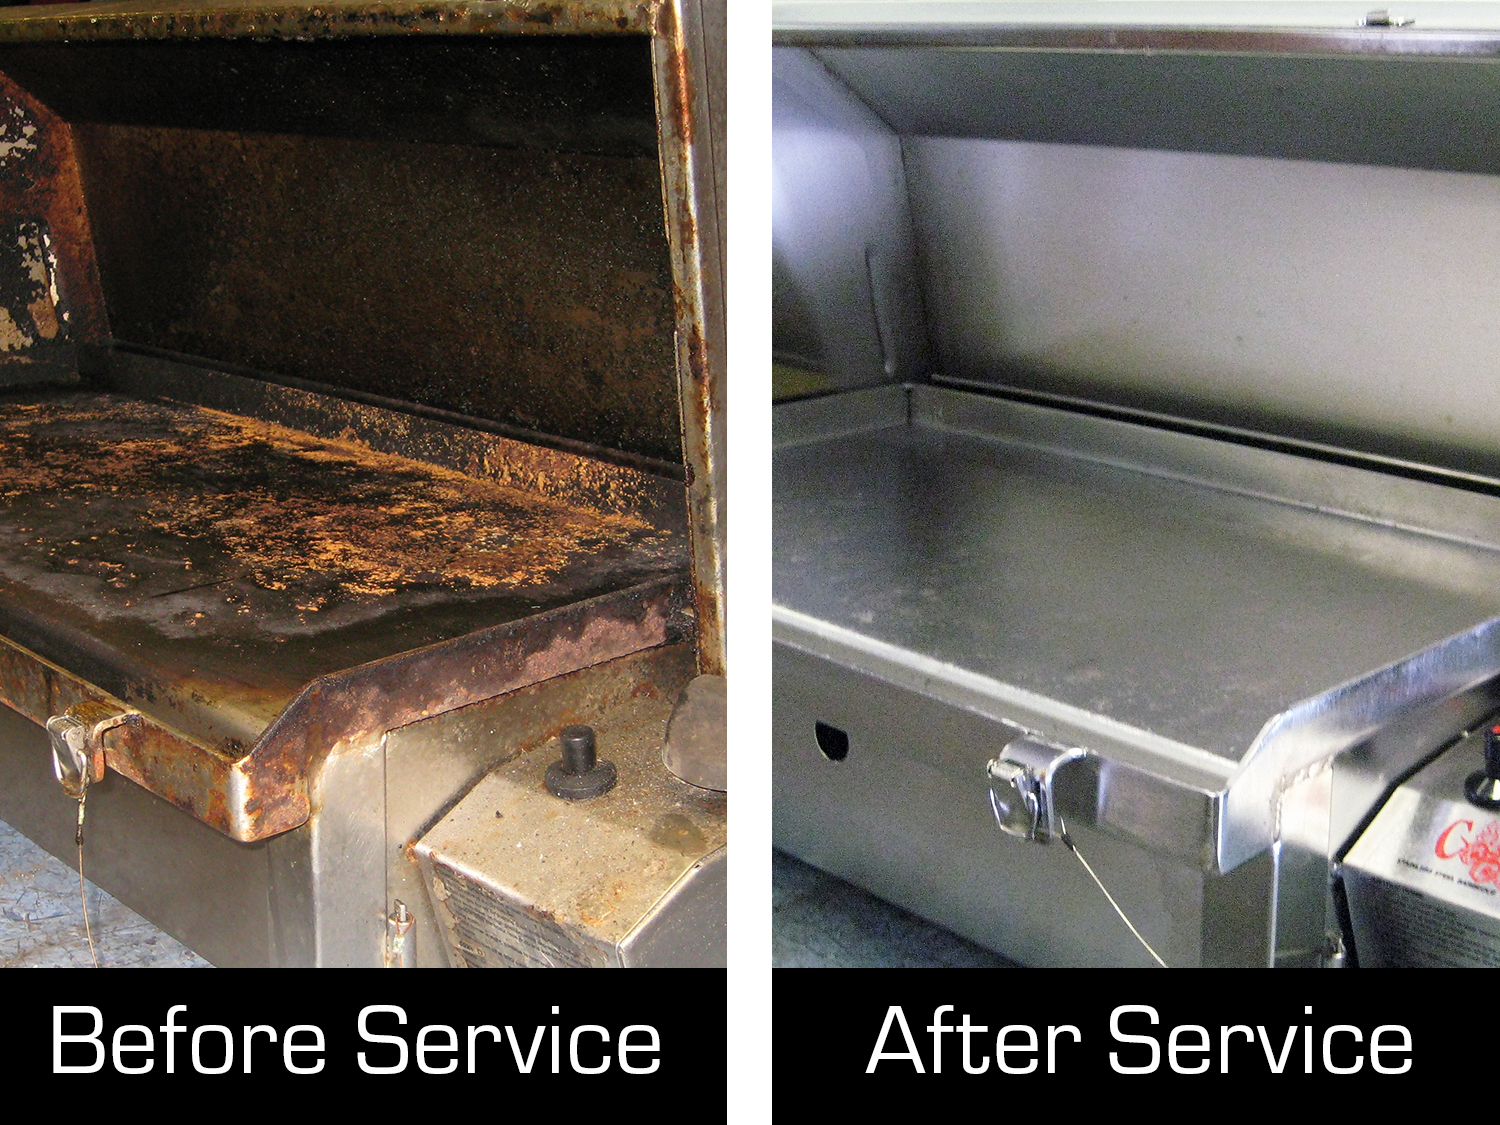 Cookout BBQ before and after barbecue service